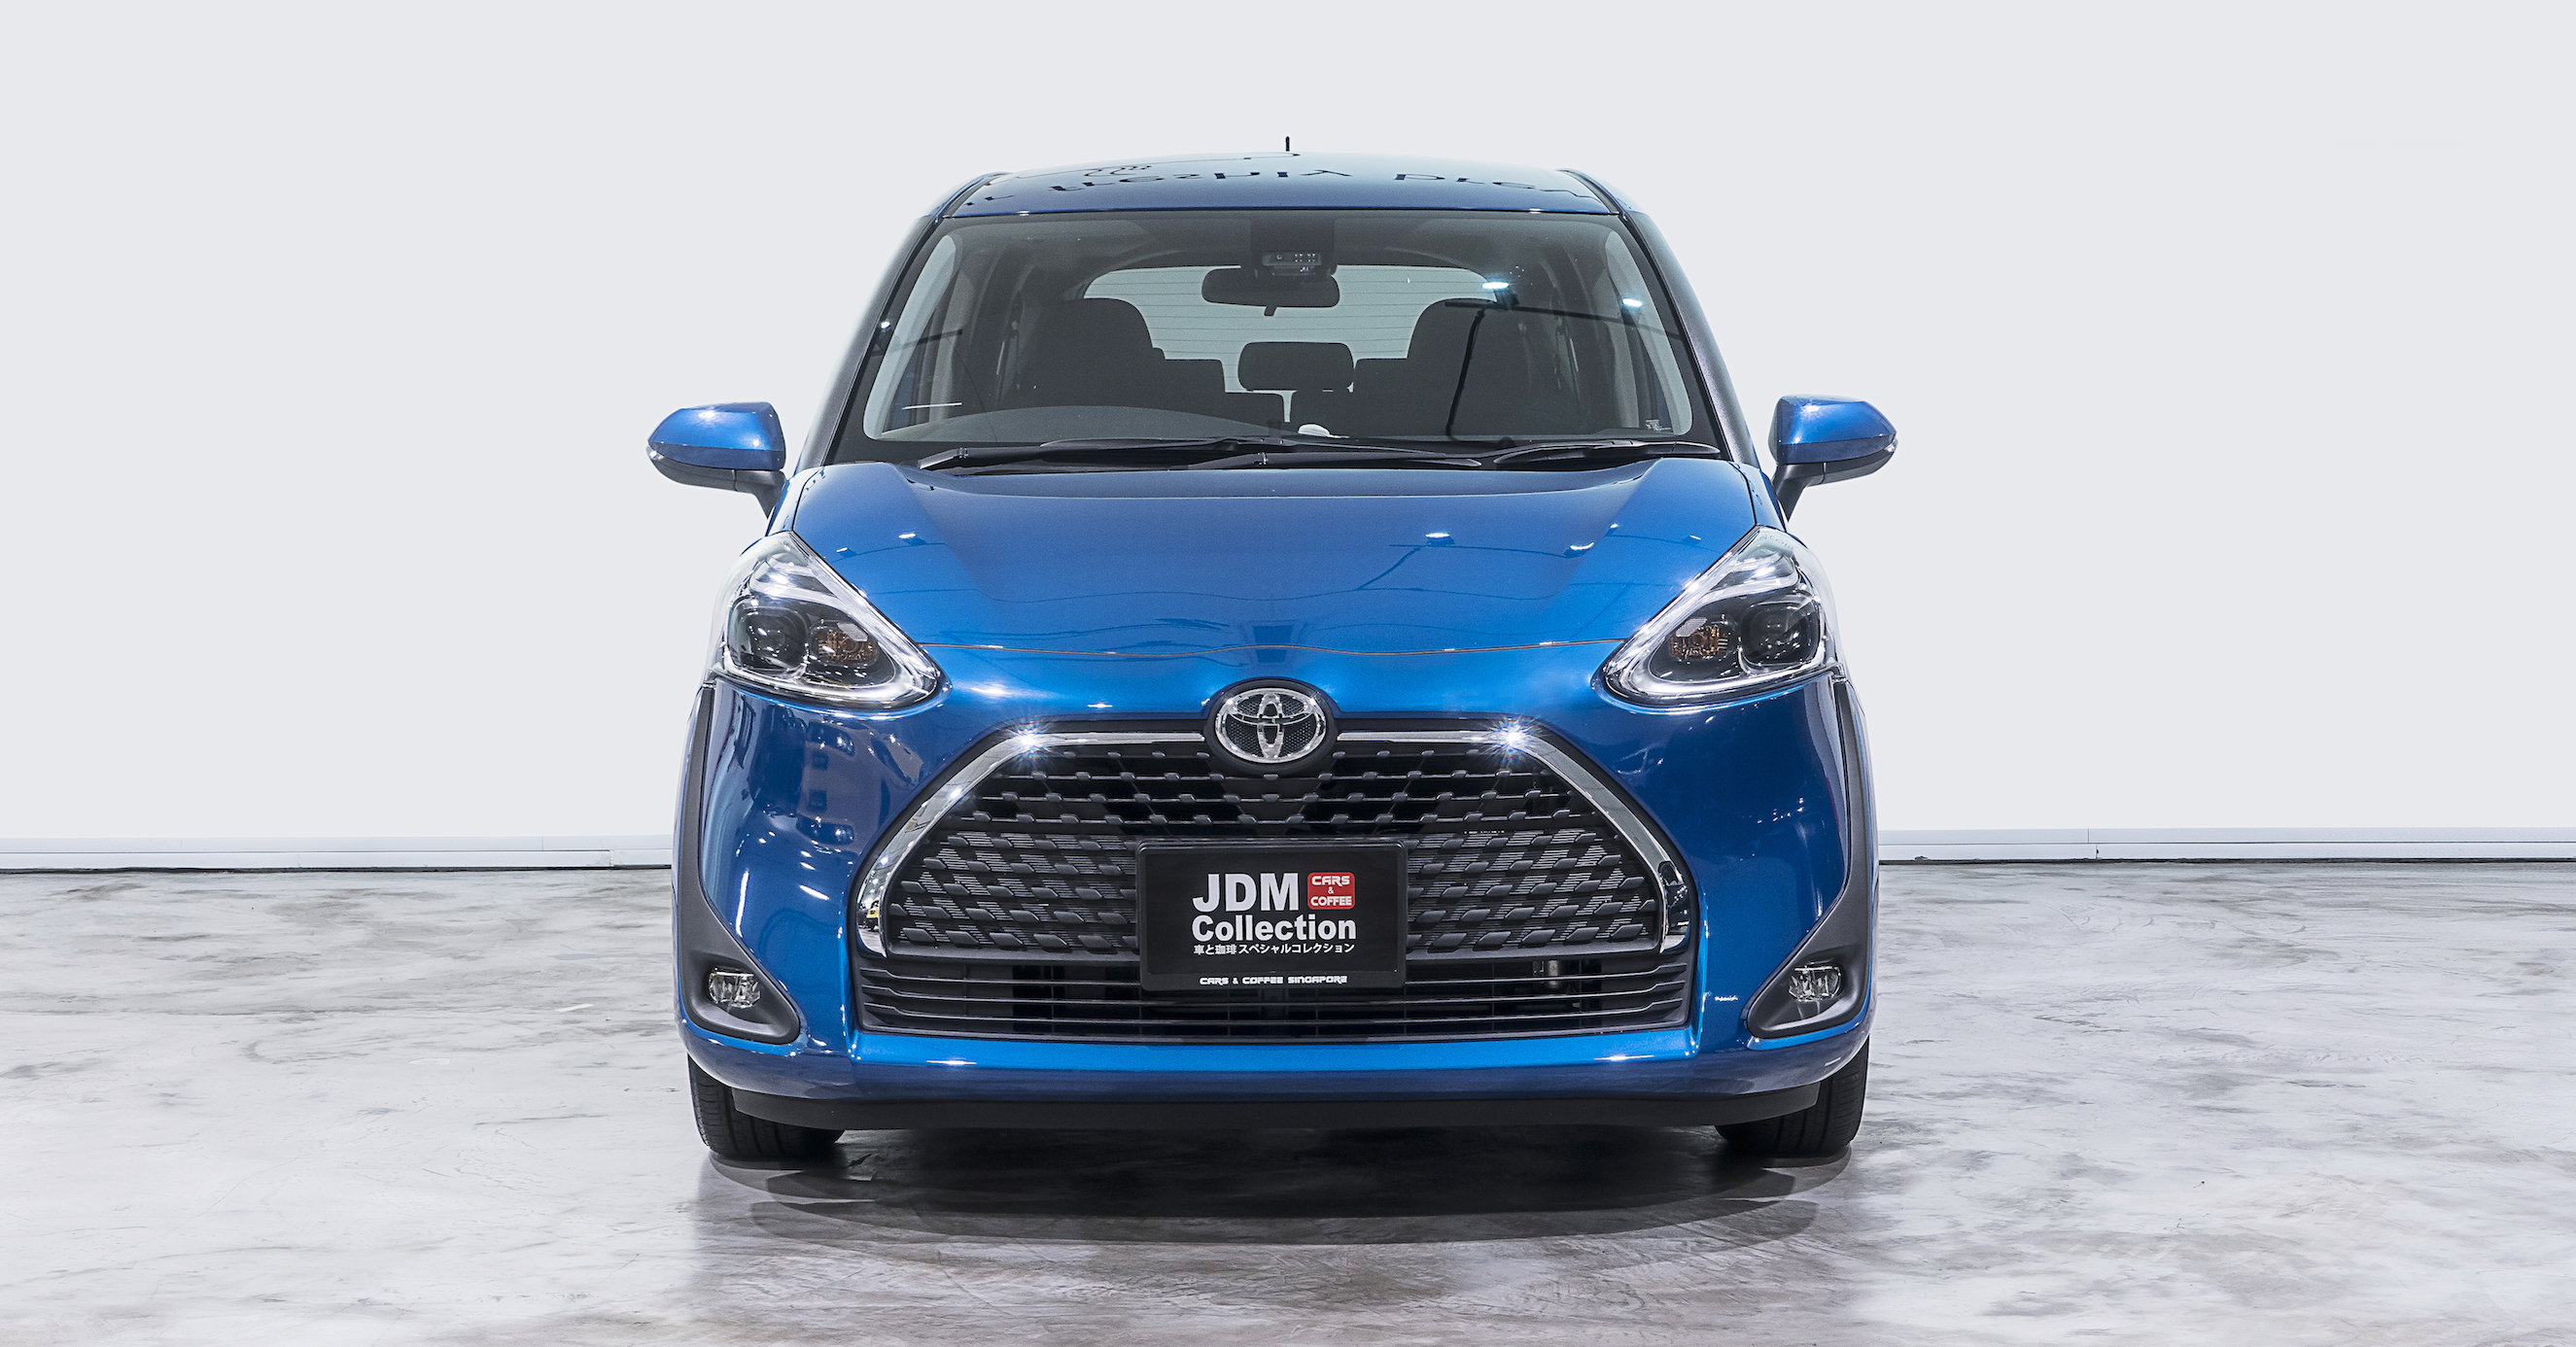 The New Toyota Sienta provides you with a playful appearance and is smartly equipped for 7 passengers. The new streamlined design brings a playful and striking image together with versatile space and thoughtful design details, allowing you to have more fun and enjoyment on every journey.